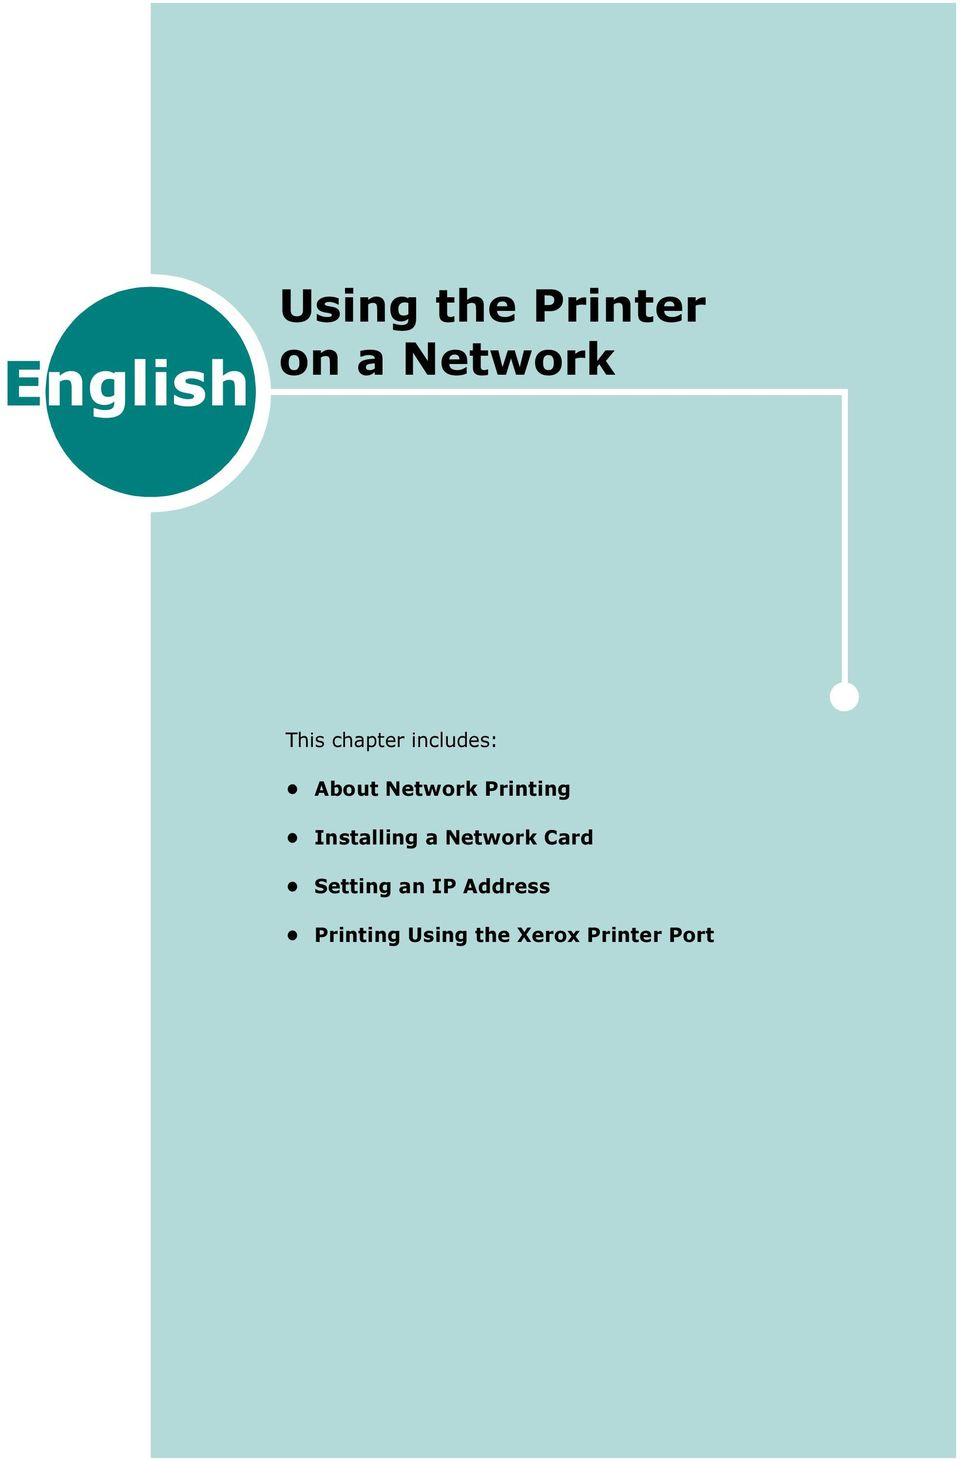 Printing Installing a Network Card Setting